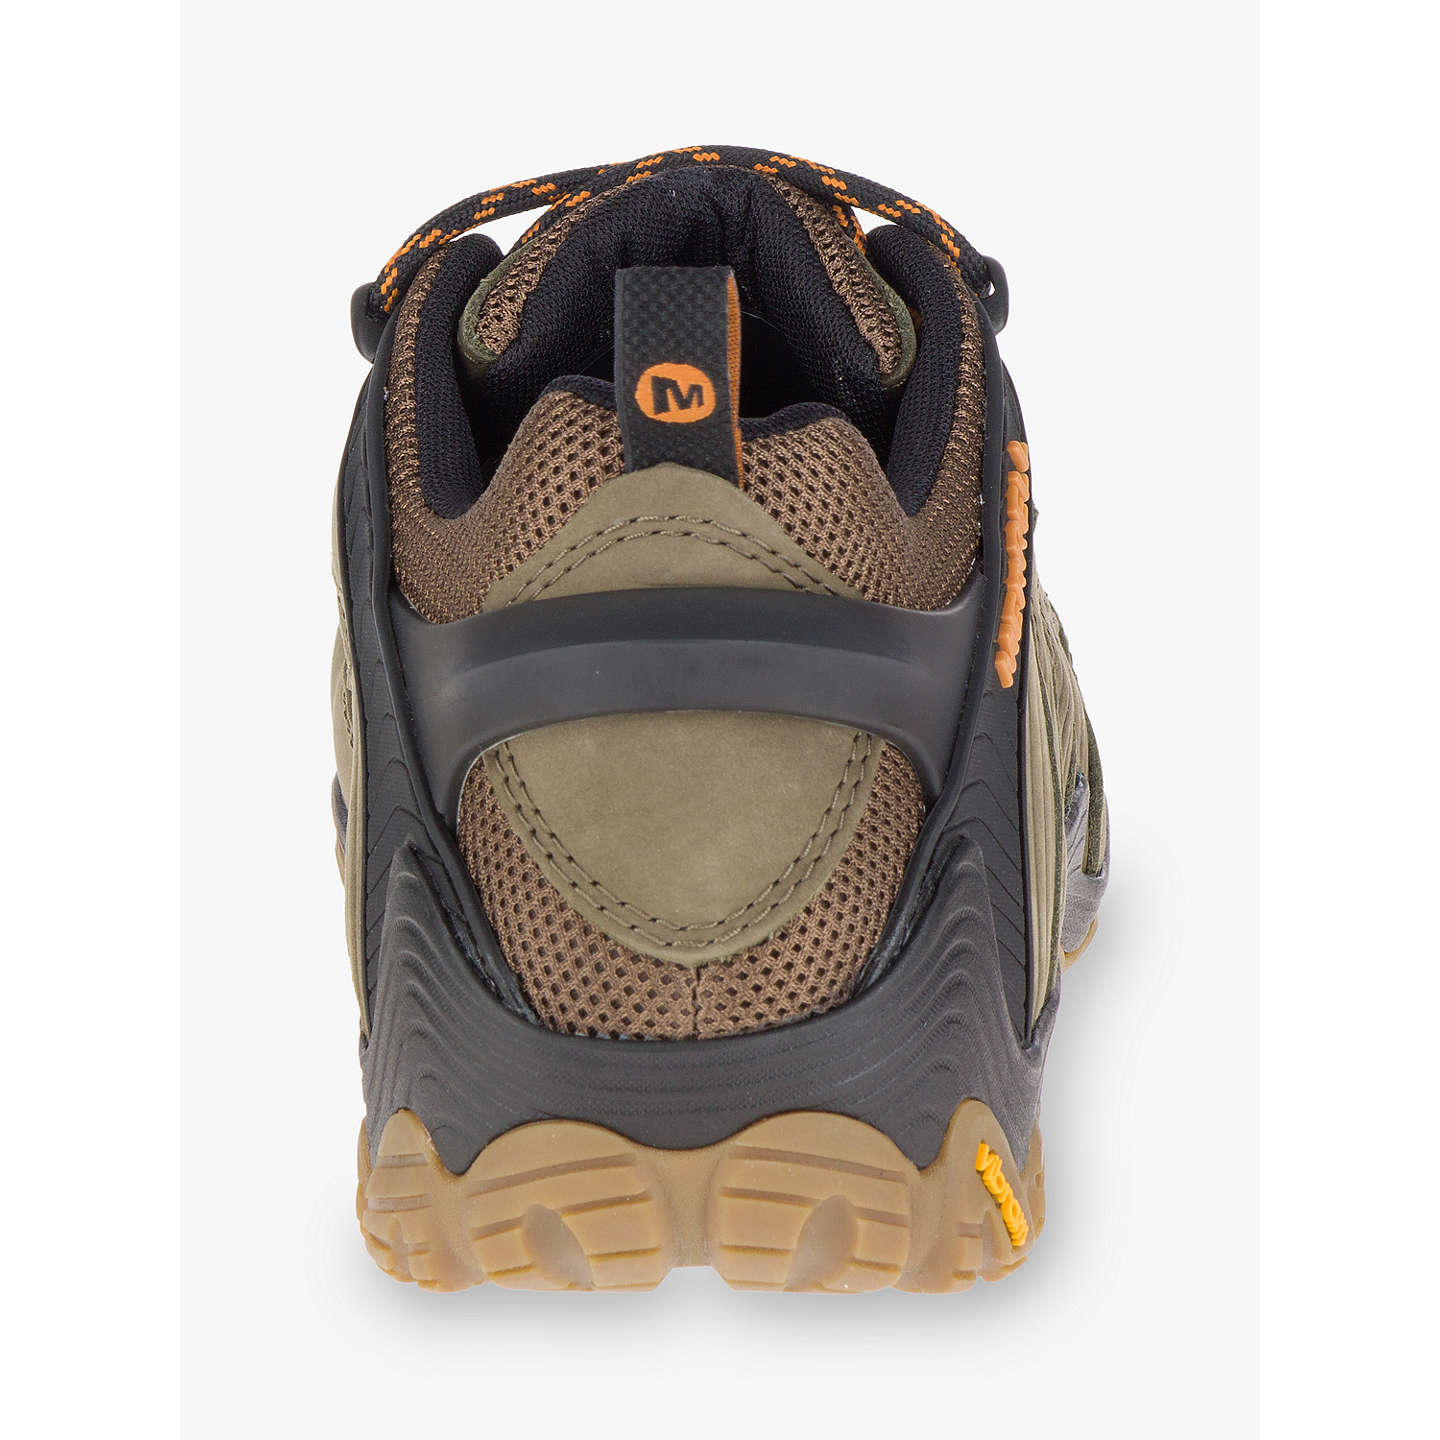 BuyMerrell Chameleon 7 GORE-TEX Hiking Shoes, Taupe, 7 Online at johnlewis.com